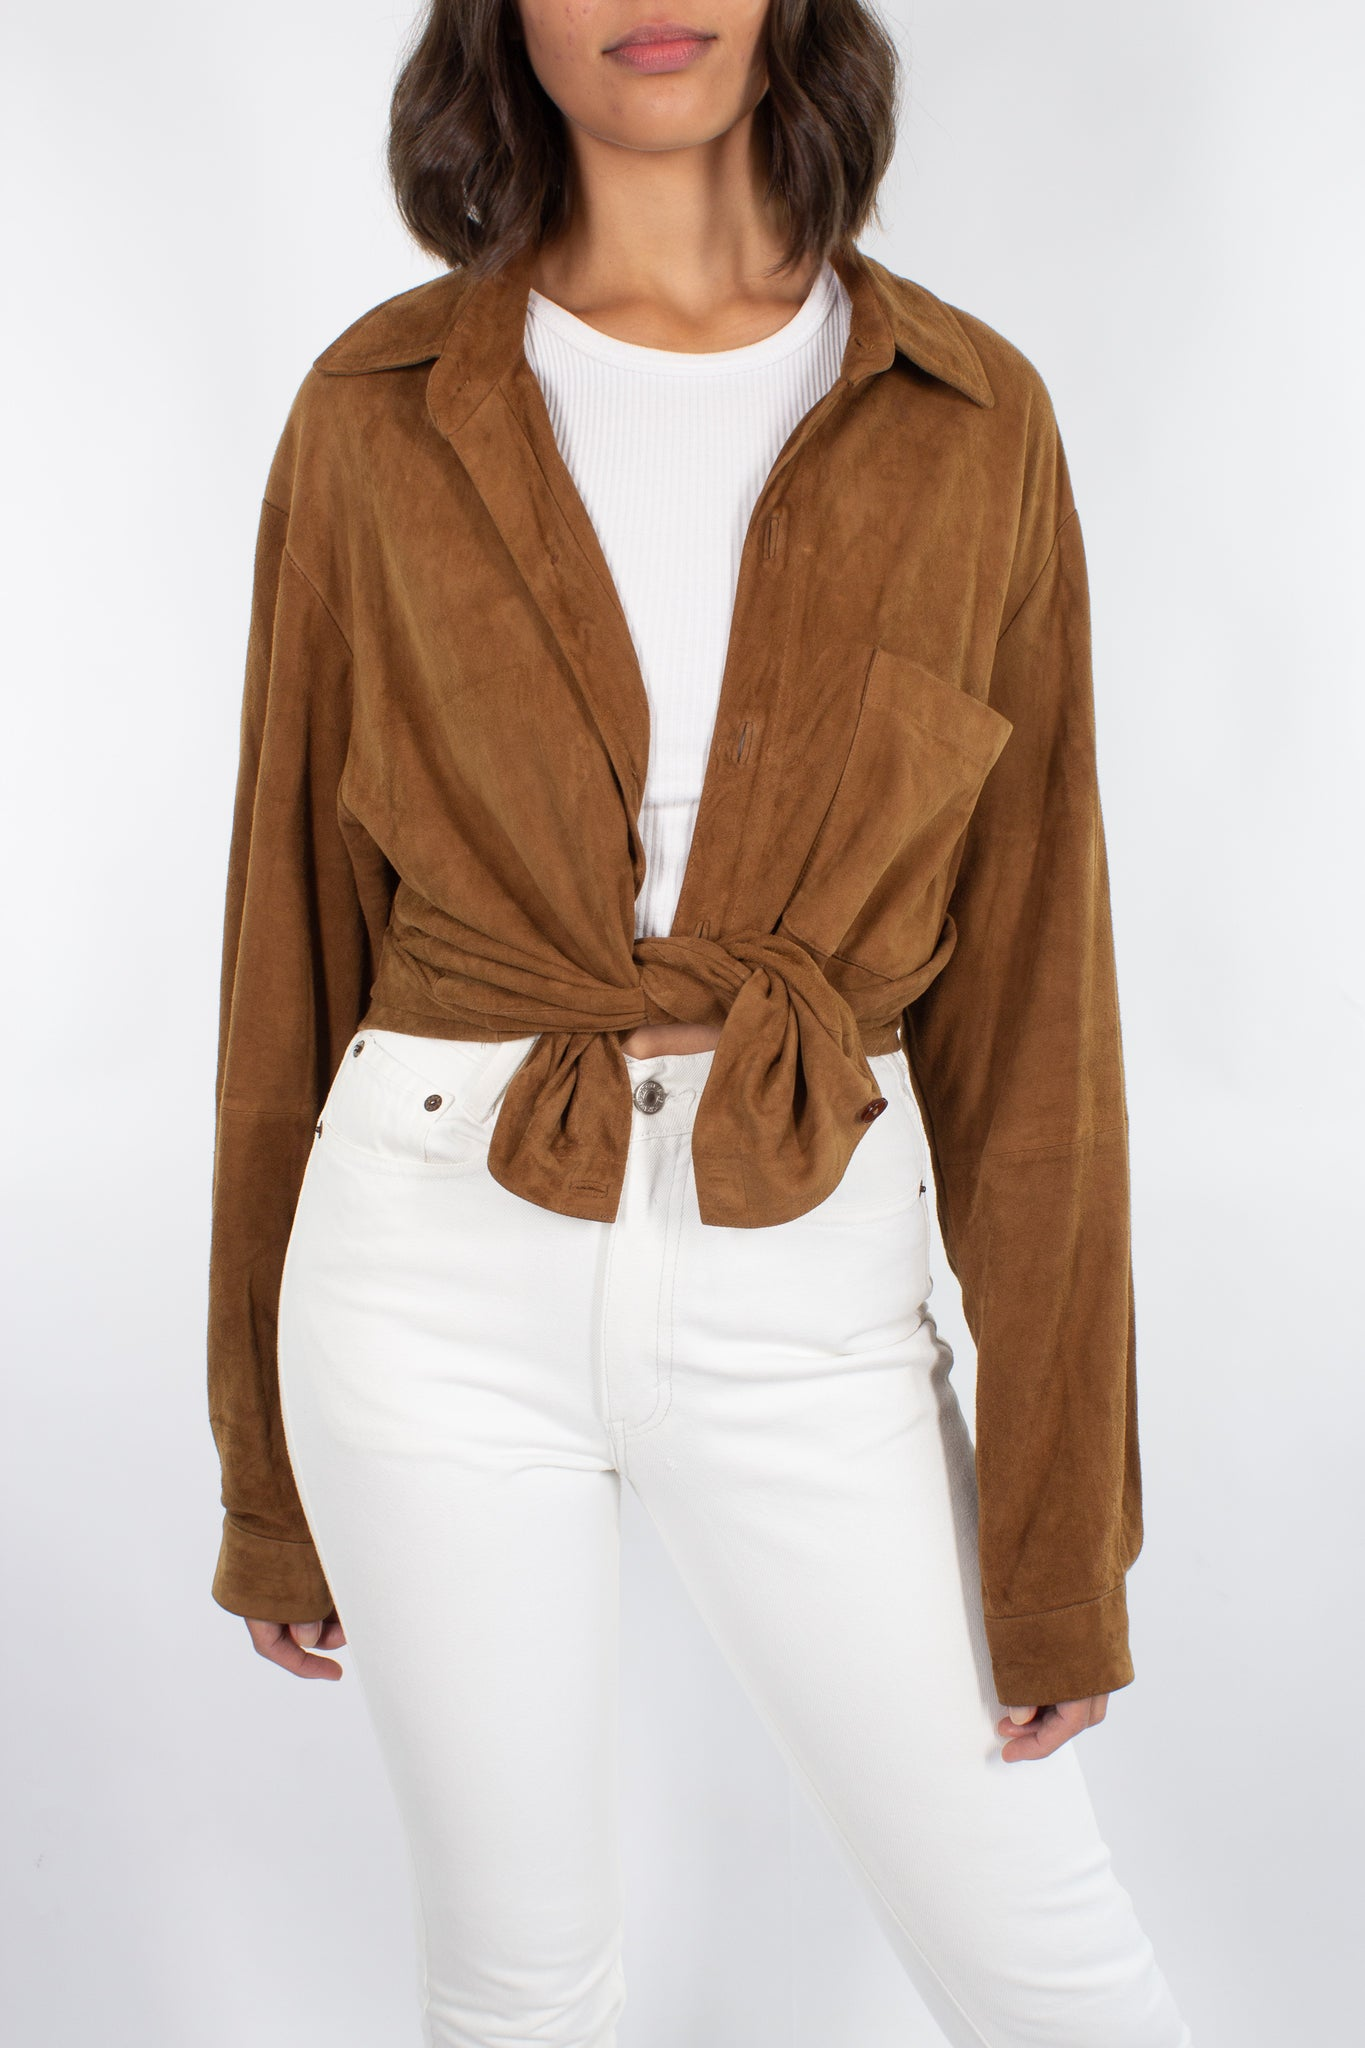 Brown Suede Shirt / Jacket - Free Size